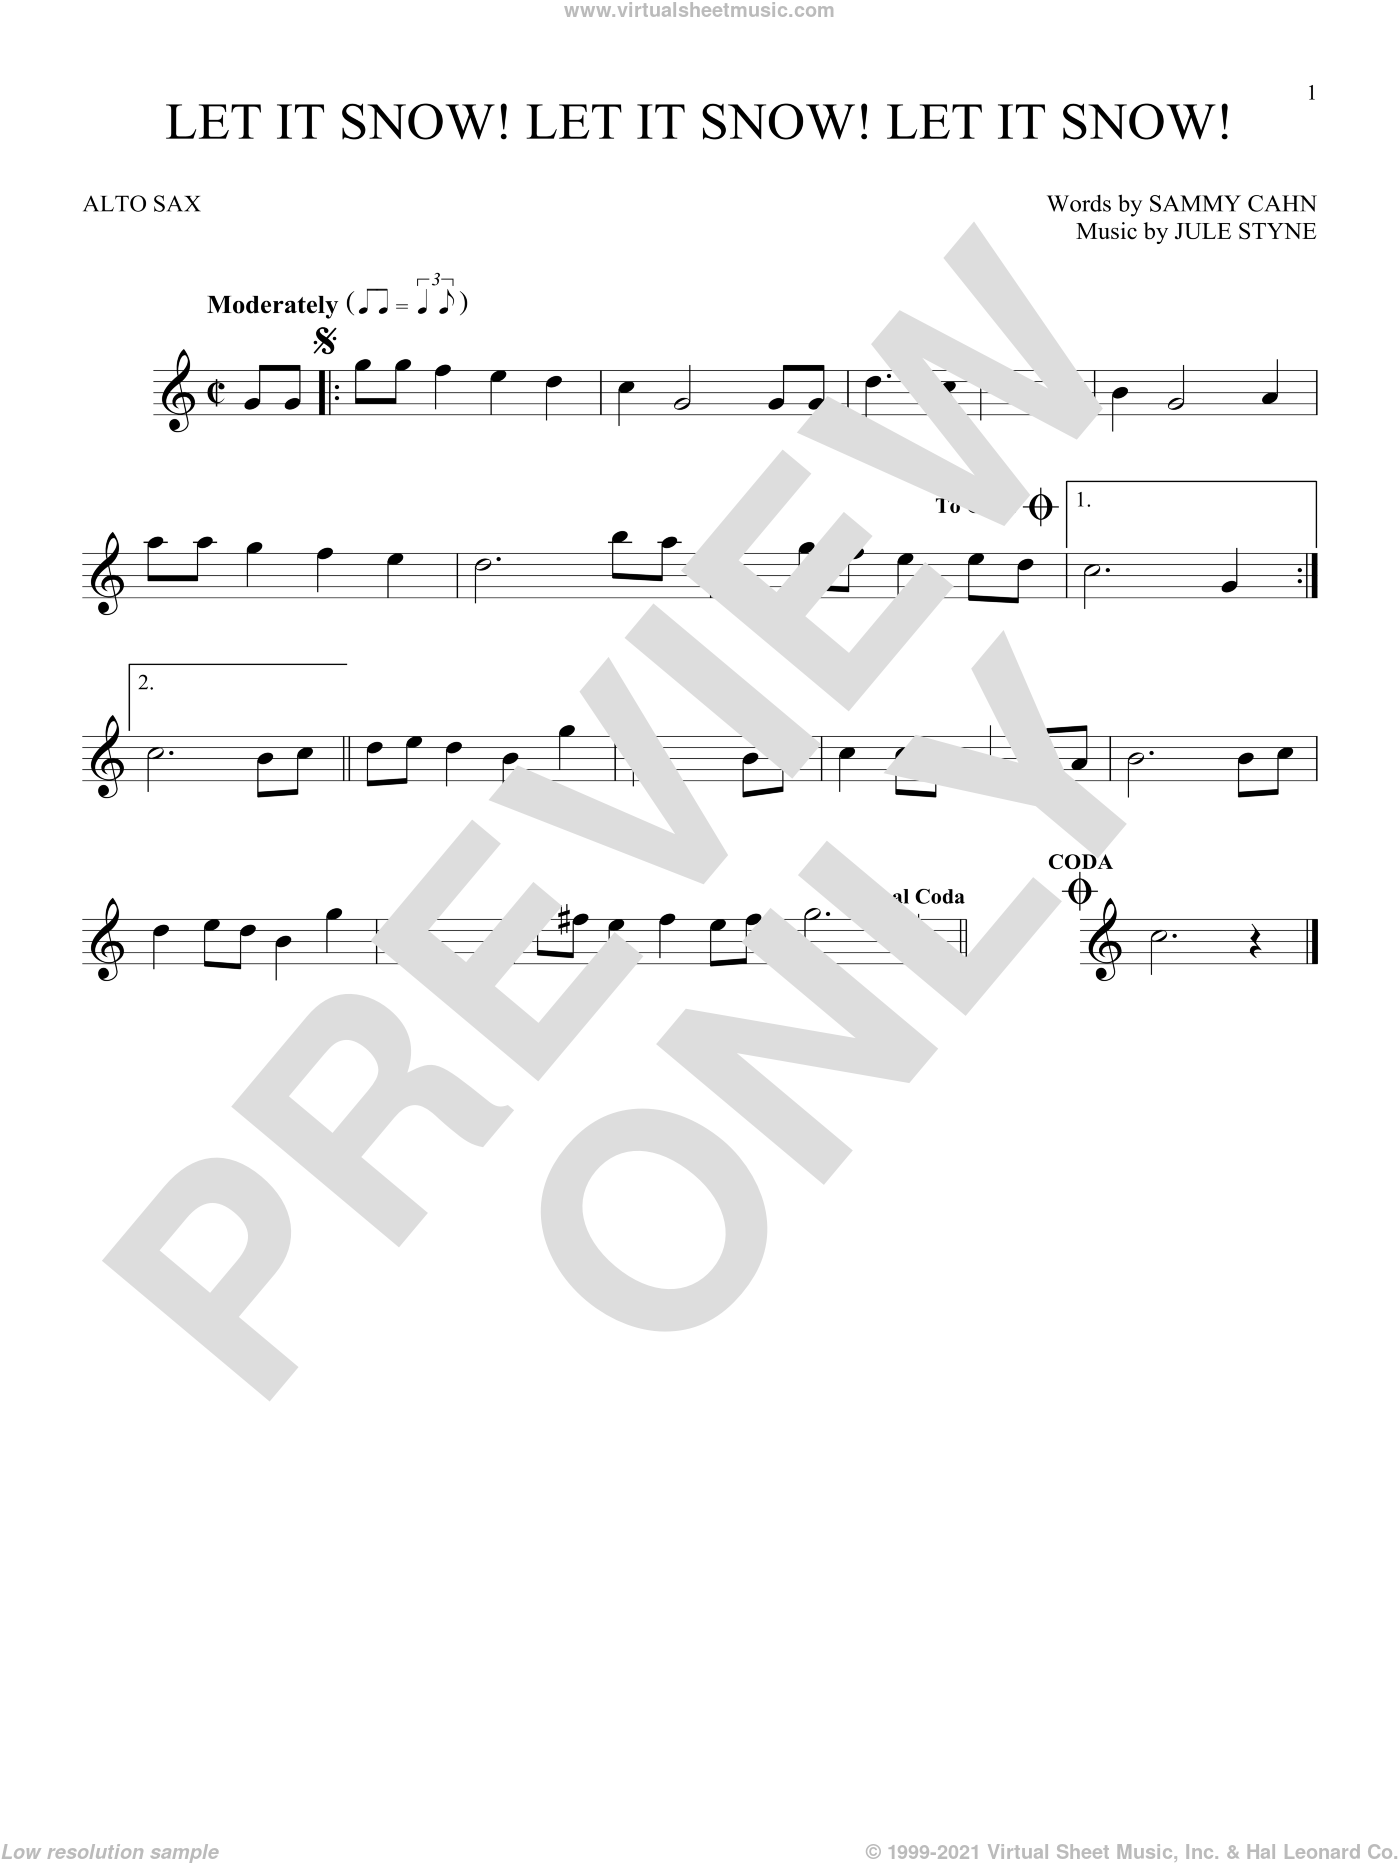 Let It Snow! Let It Snow! Let It Snow! sheet music for alto saxophone solo by Sammy Cahn, Jule Styne and Sammy Cahn & Julie Styne, intermediate skill level